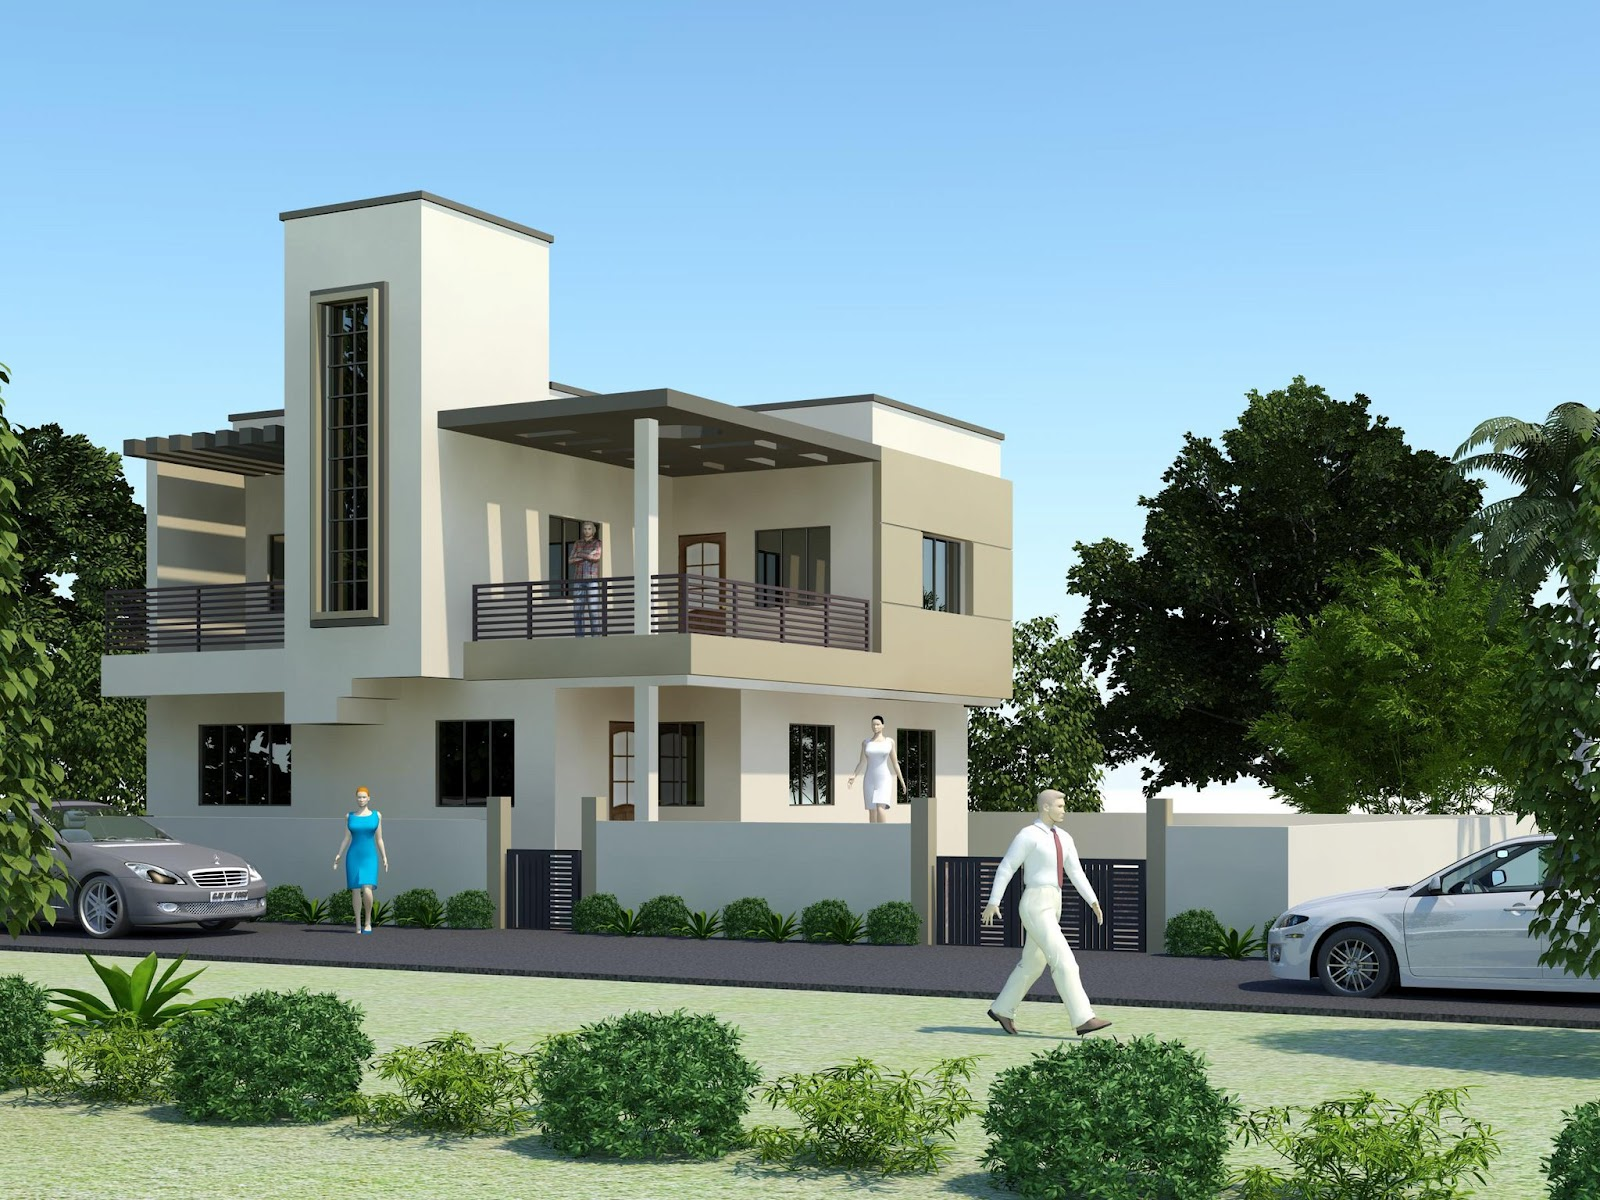 New home designs latest modern homes exterior designs for Indian home design photos exterior